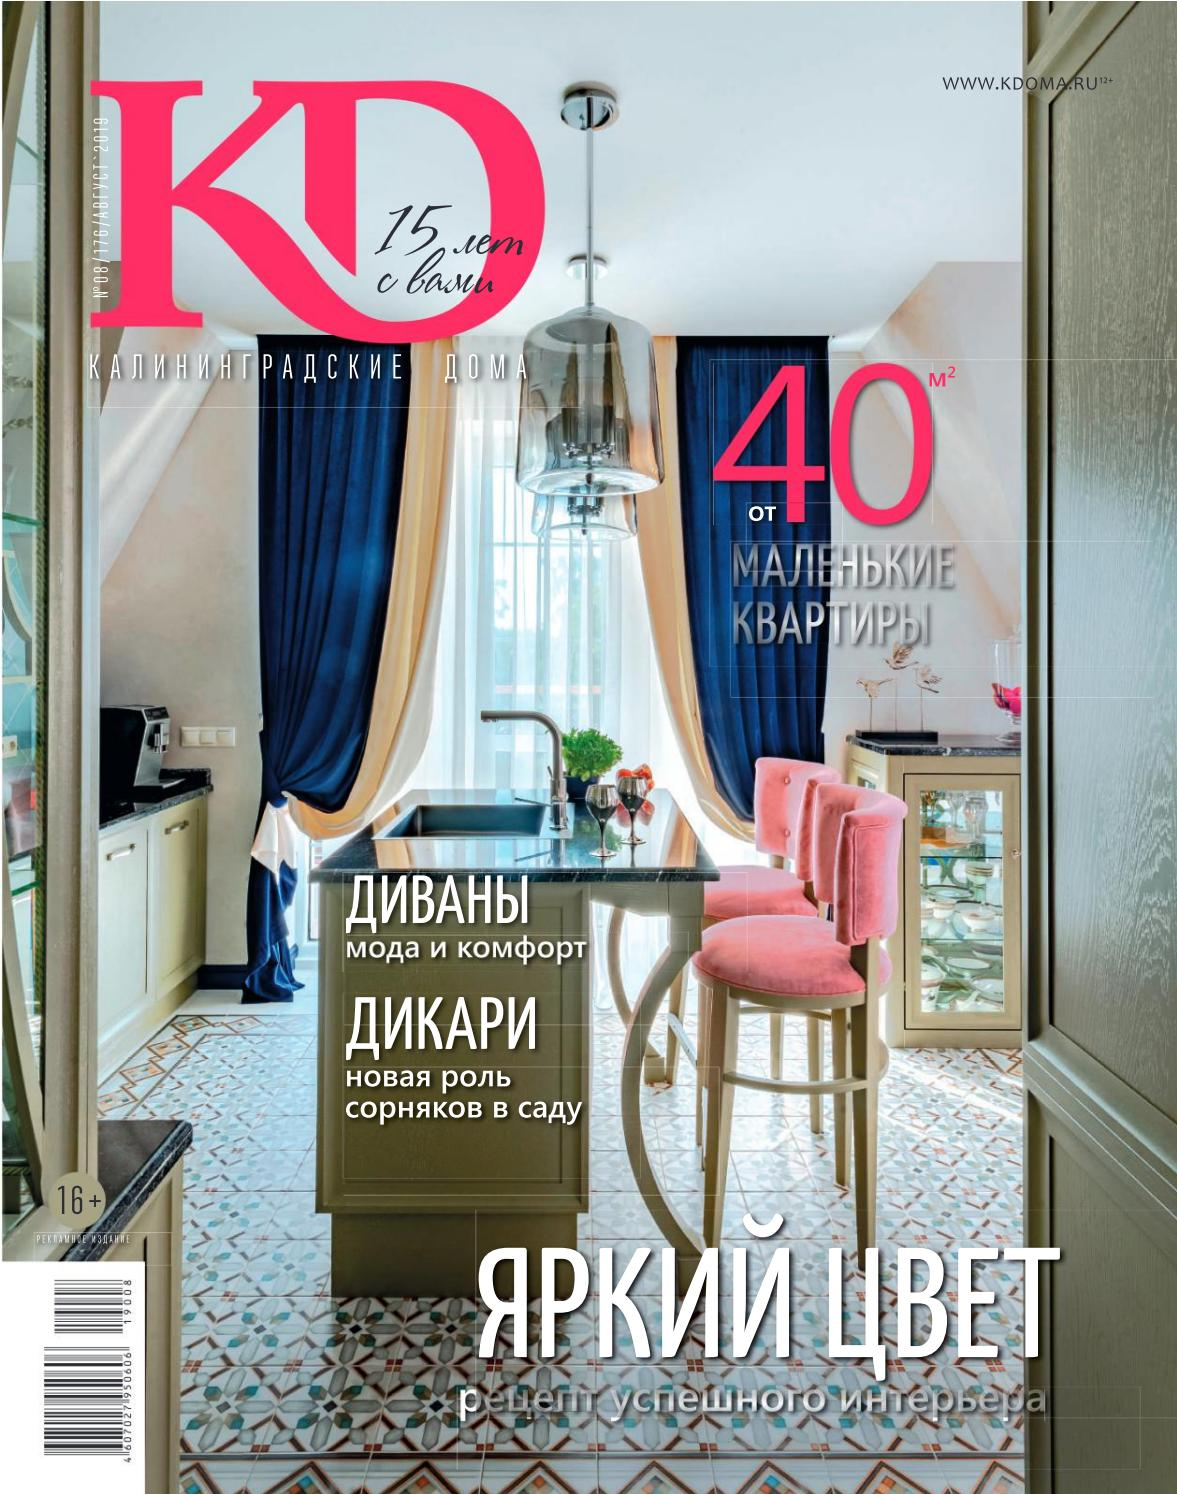 Salon Jardin Design Inspirant Klnd0m by Straub Imke issuu Of 20 Best Of Salon Jardin Design